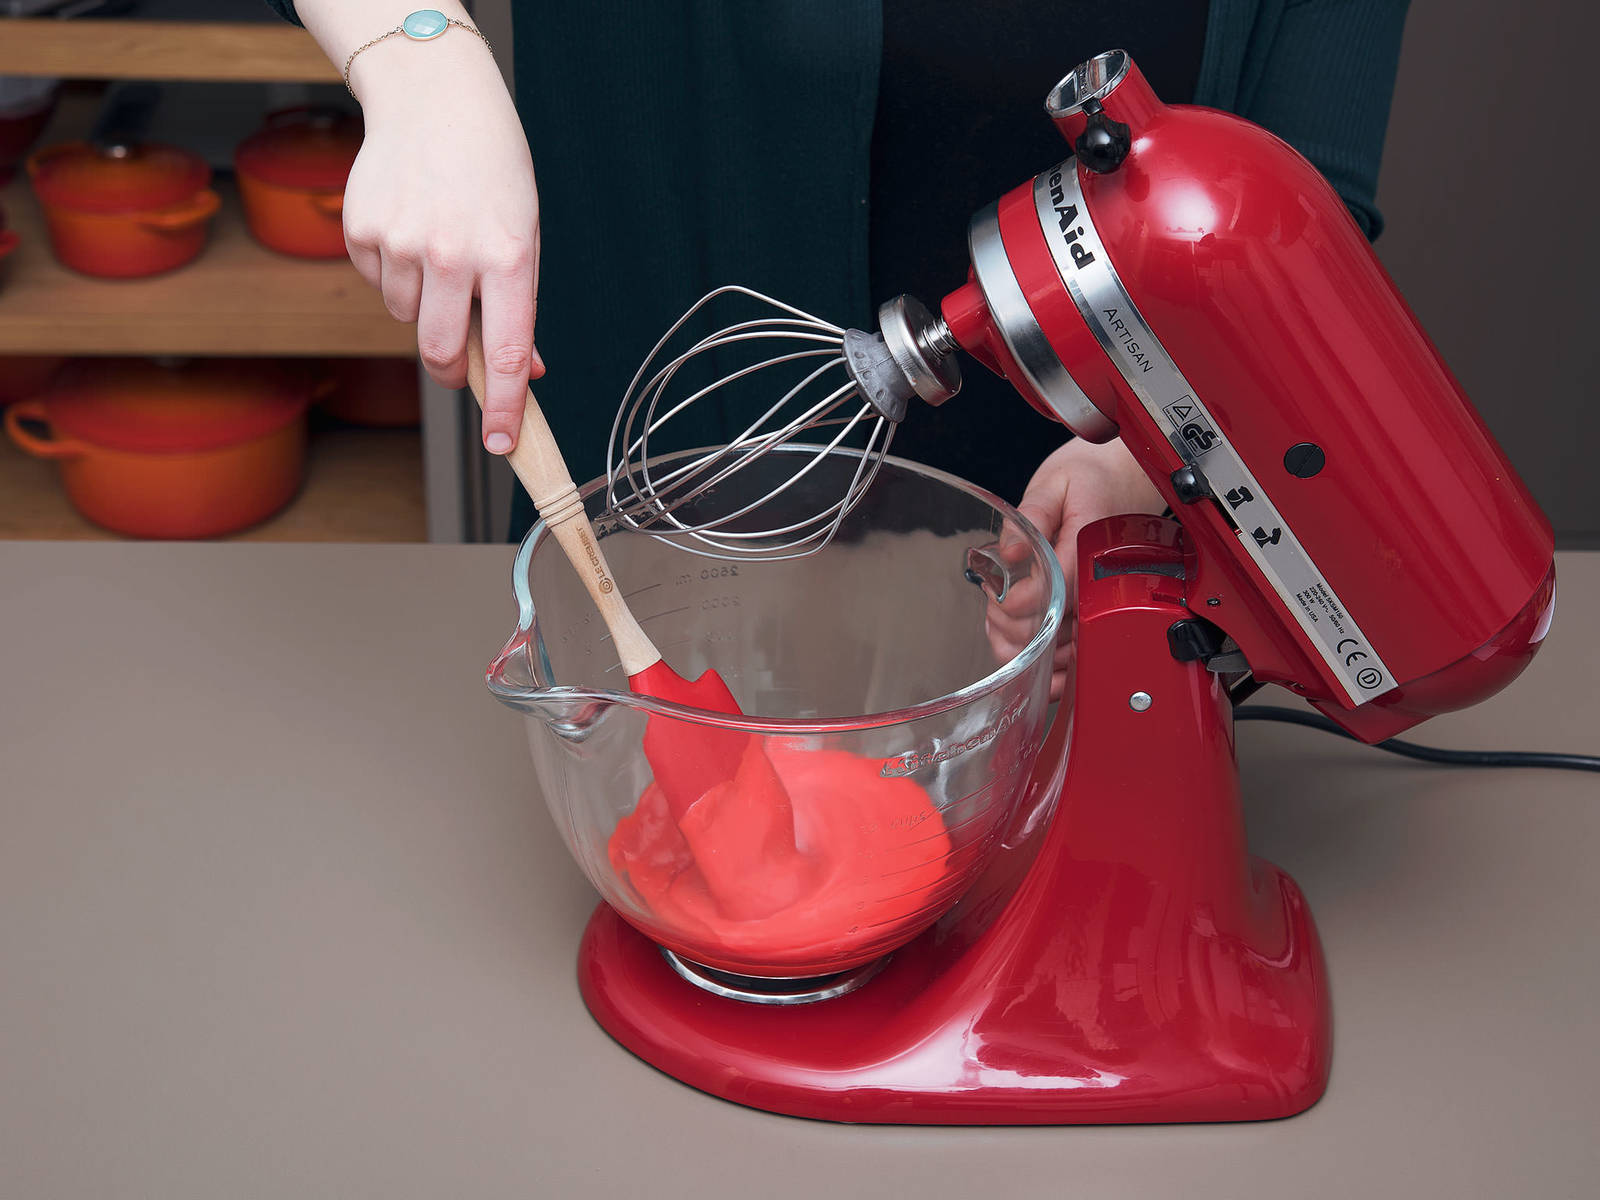 To make ketchup, add cream cheese and butter to stand mixer. Beat for approx. 1 min. on medium-high speed until fluffy. Add vanilla extract and continue beating for another minute. Slowly incorporate confectioner´s sugar and red food coloring until frosting is smooth and has reached the desired shade of red. Transfer frosting to prepared piping bag fitted with a small round tip and refrigerate for approx. 10 min.